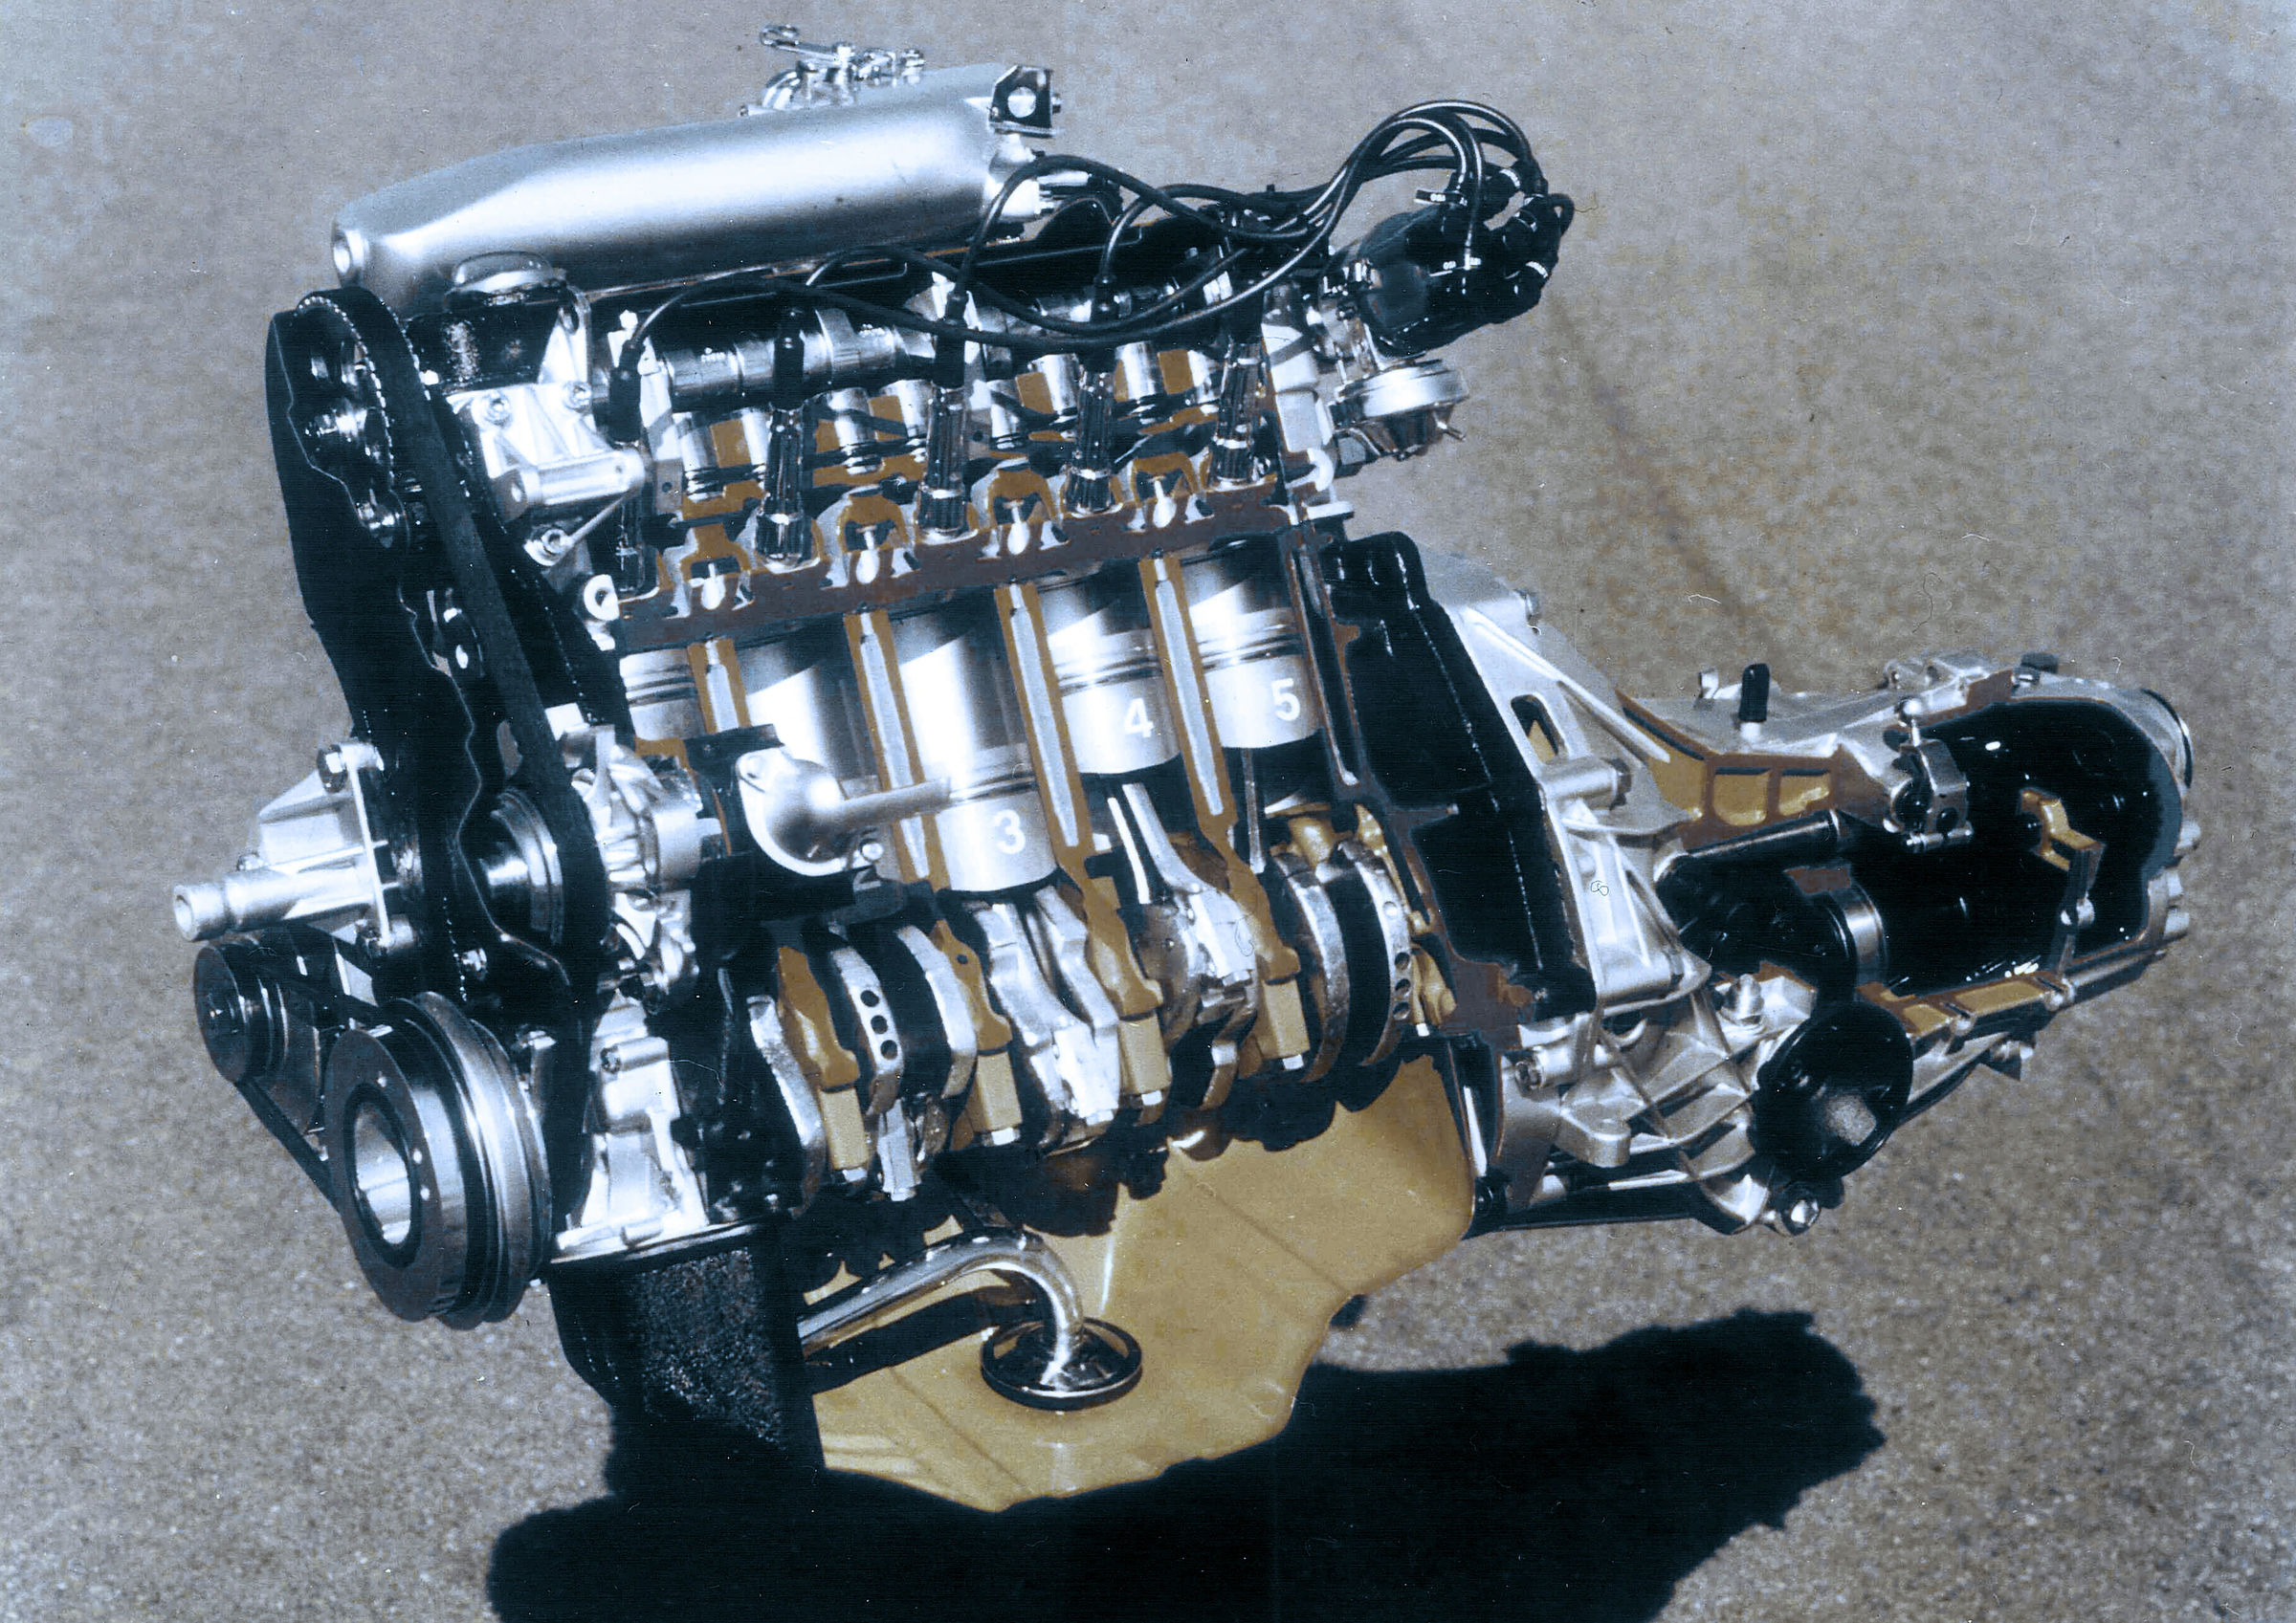 40 years of Audi five-cylinder engines | Audi MediaCenter